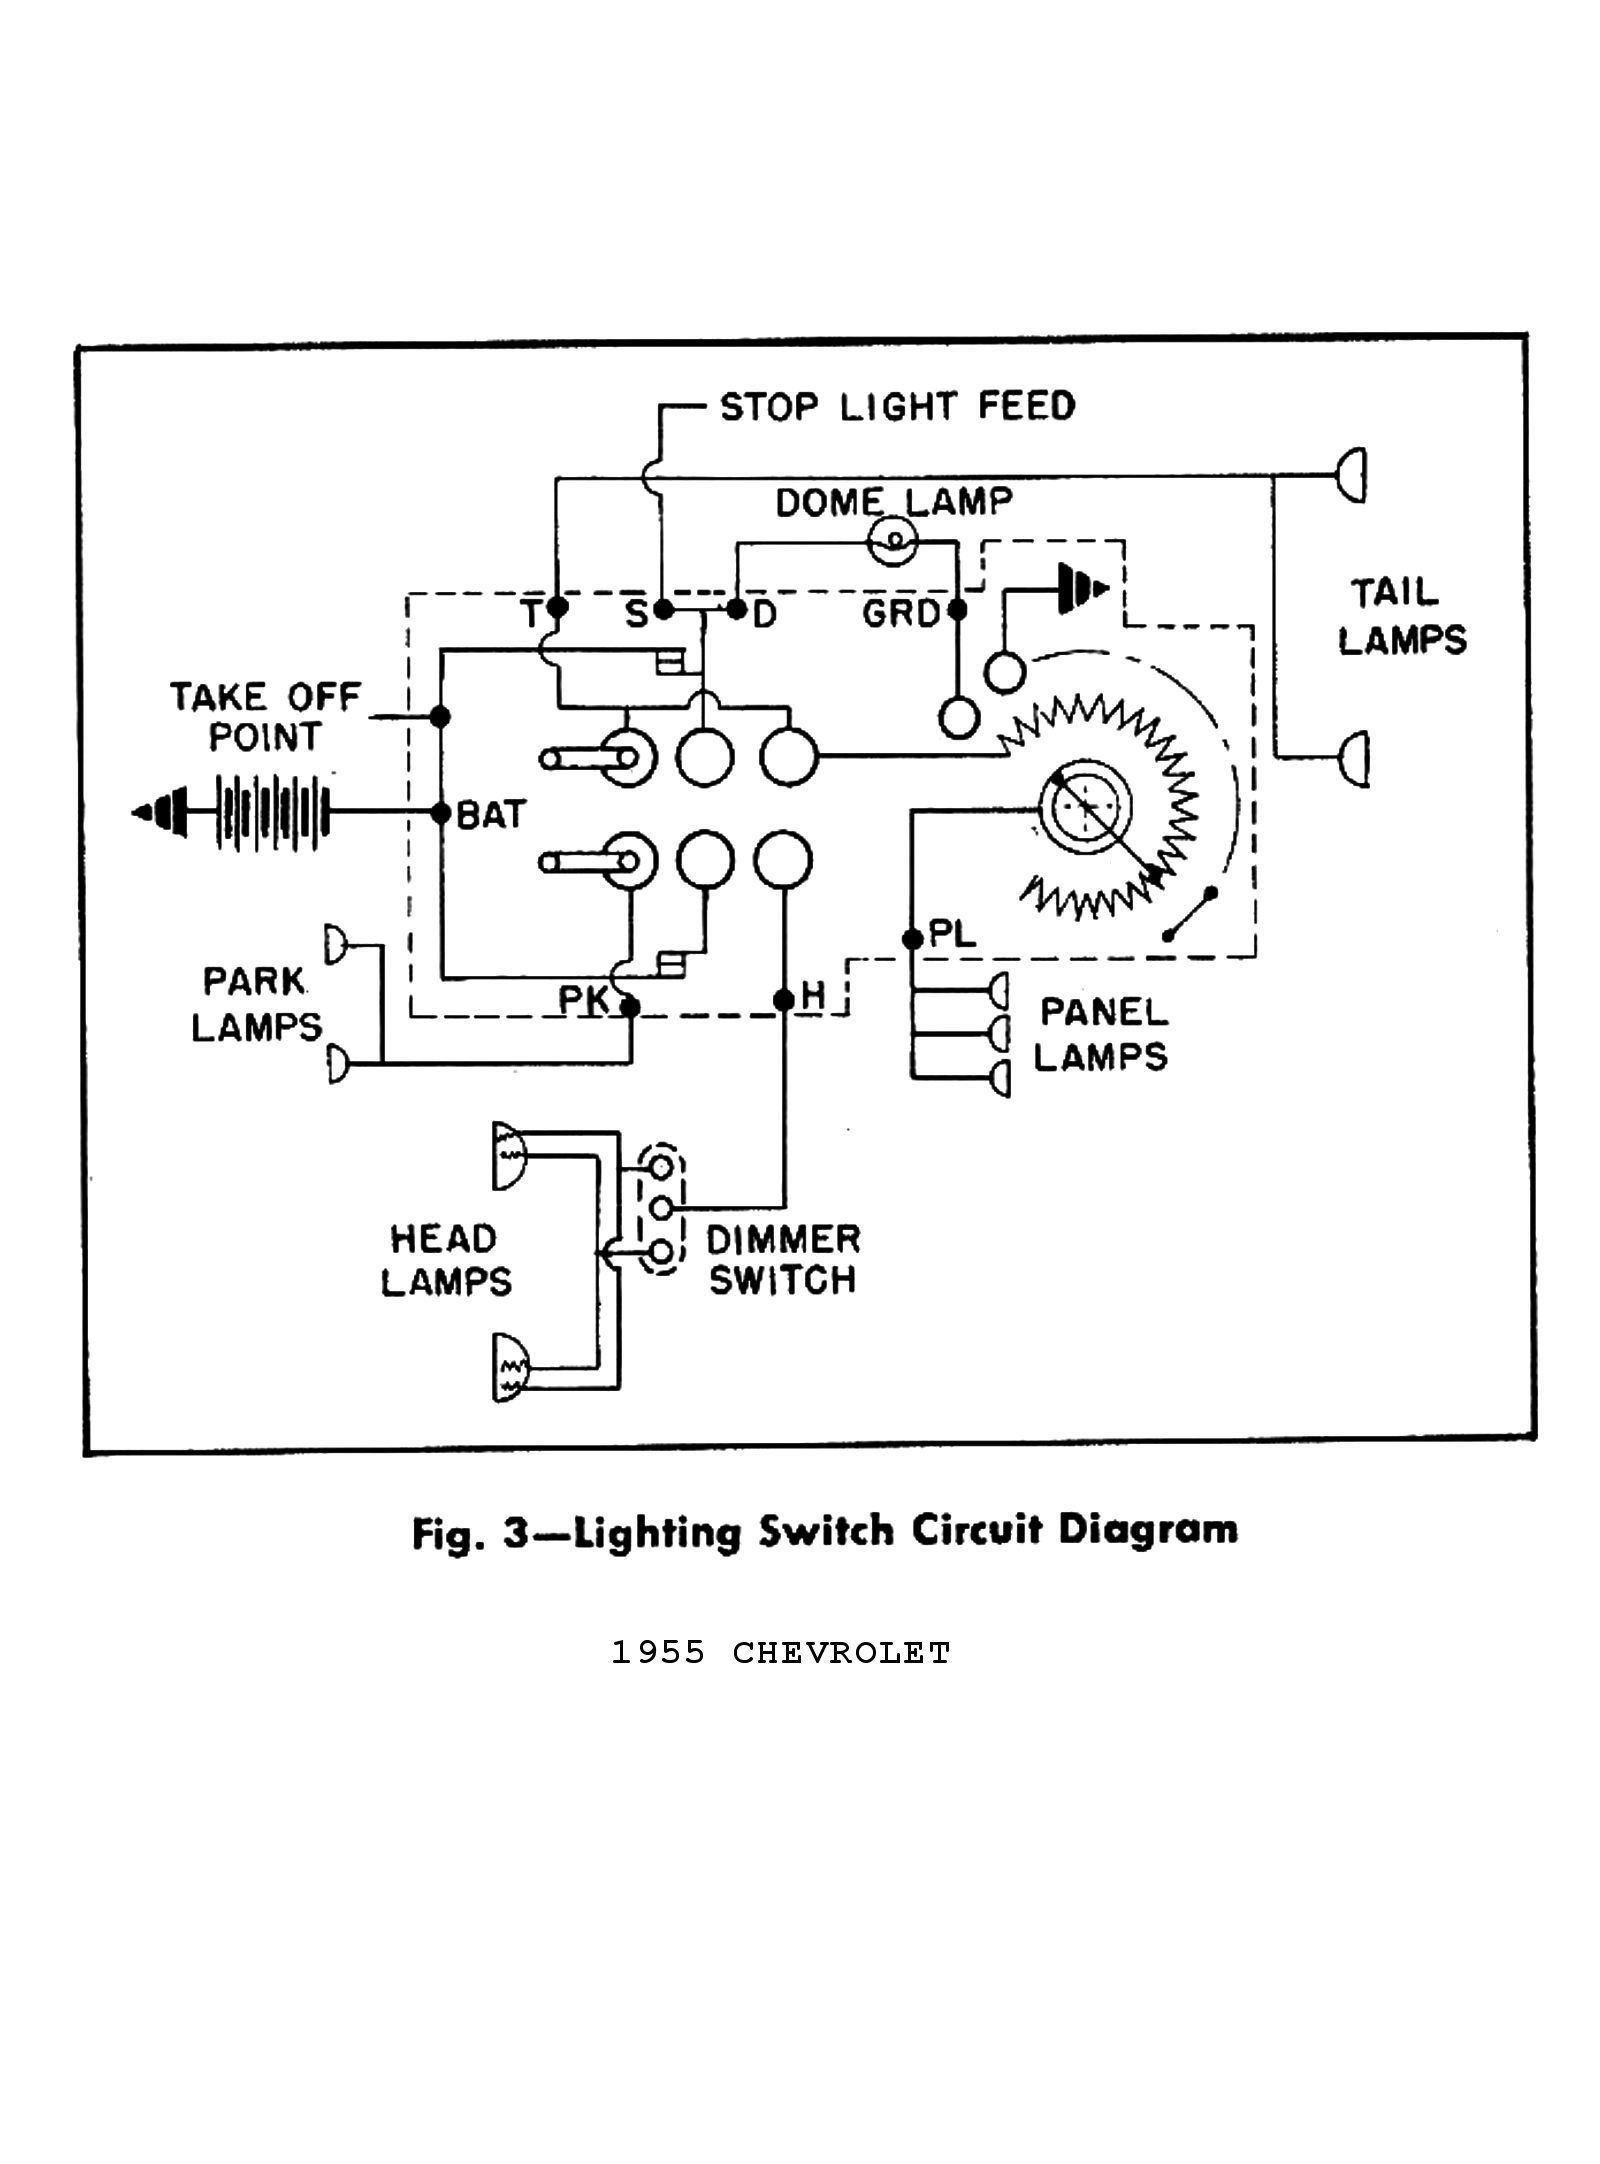 gm dome light wiring harness wiring diagram page 82 chevy truck courtesy light wiring diagram [ 1600 x 2164 Pixel ]